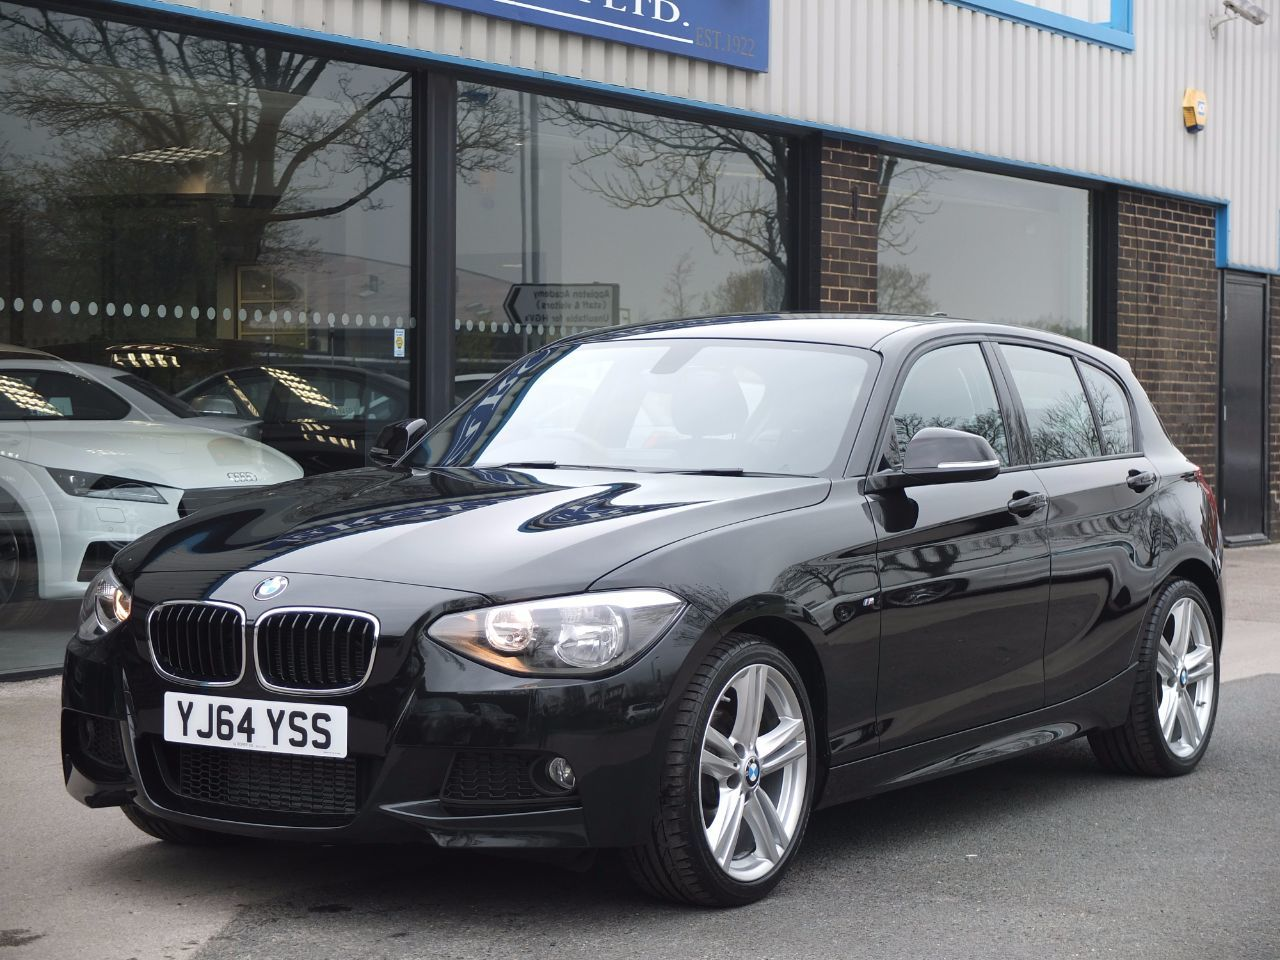 BMW 1 Series 2.0 118d M Sport 5 door Automatic, Sat Nav +++ Hatchback Diesel Black Sapphire MetallicBMW 1 Series 2.0 118d M Sport 5 door Automatic, Sat Nav +++ Hatchback Diesel Black Sapphire Metallic at fa Roper Ltd Bradford